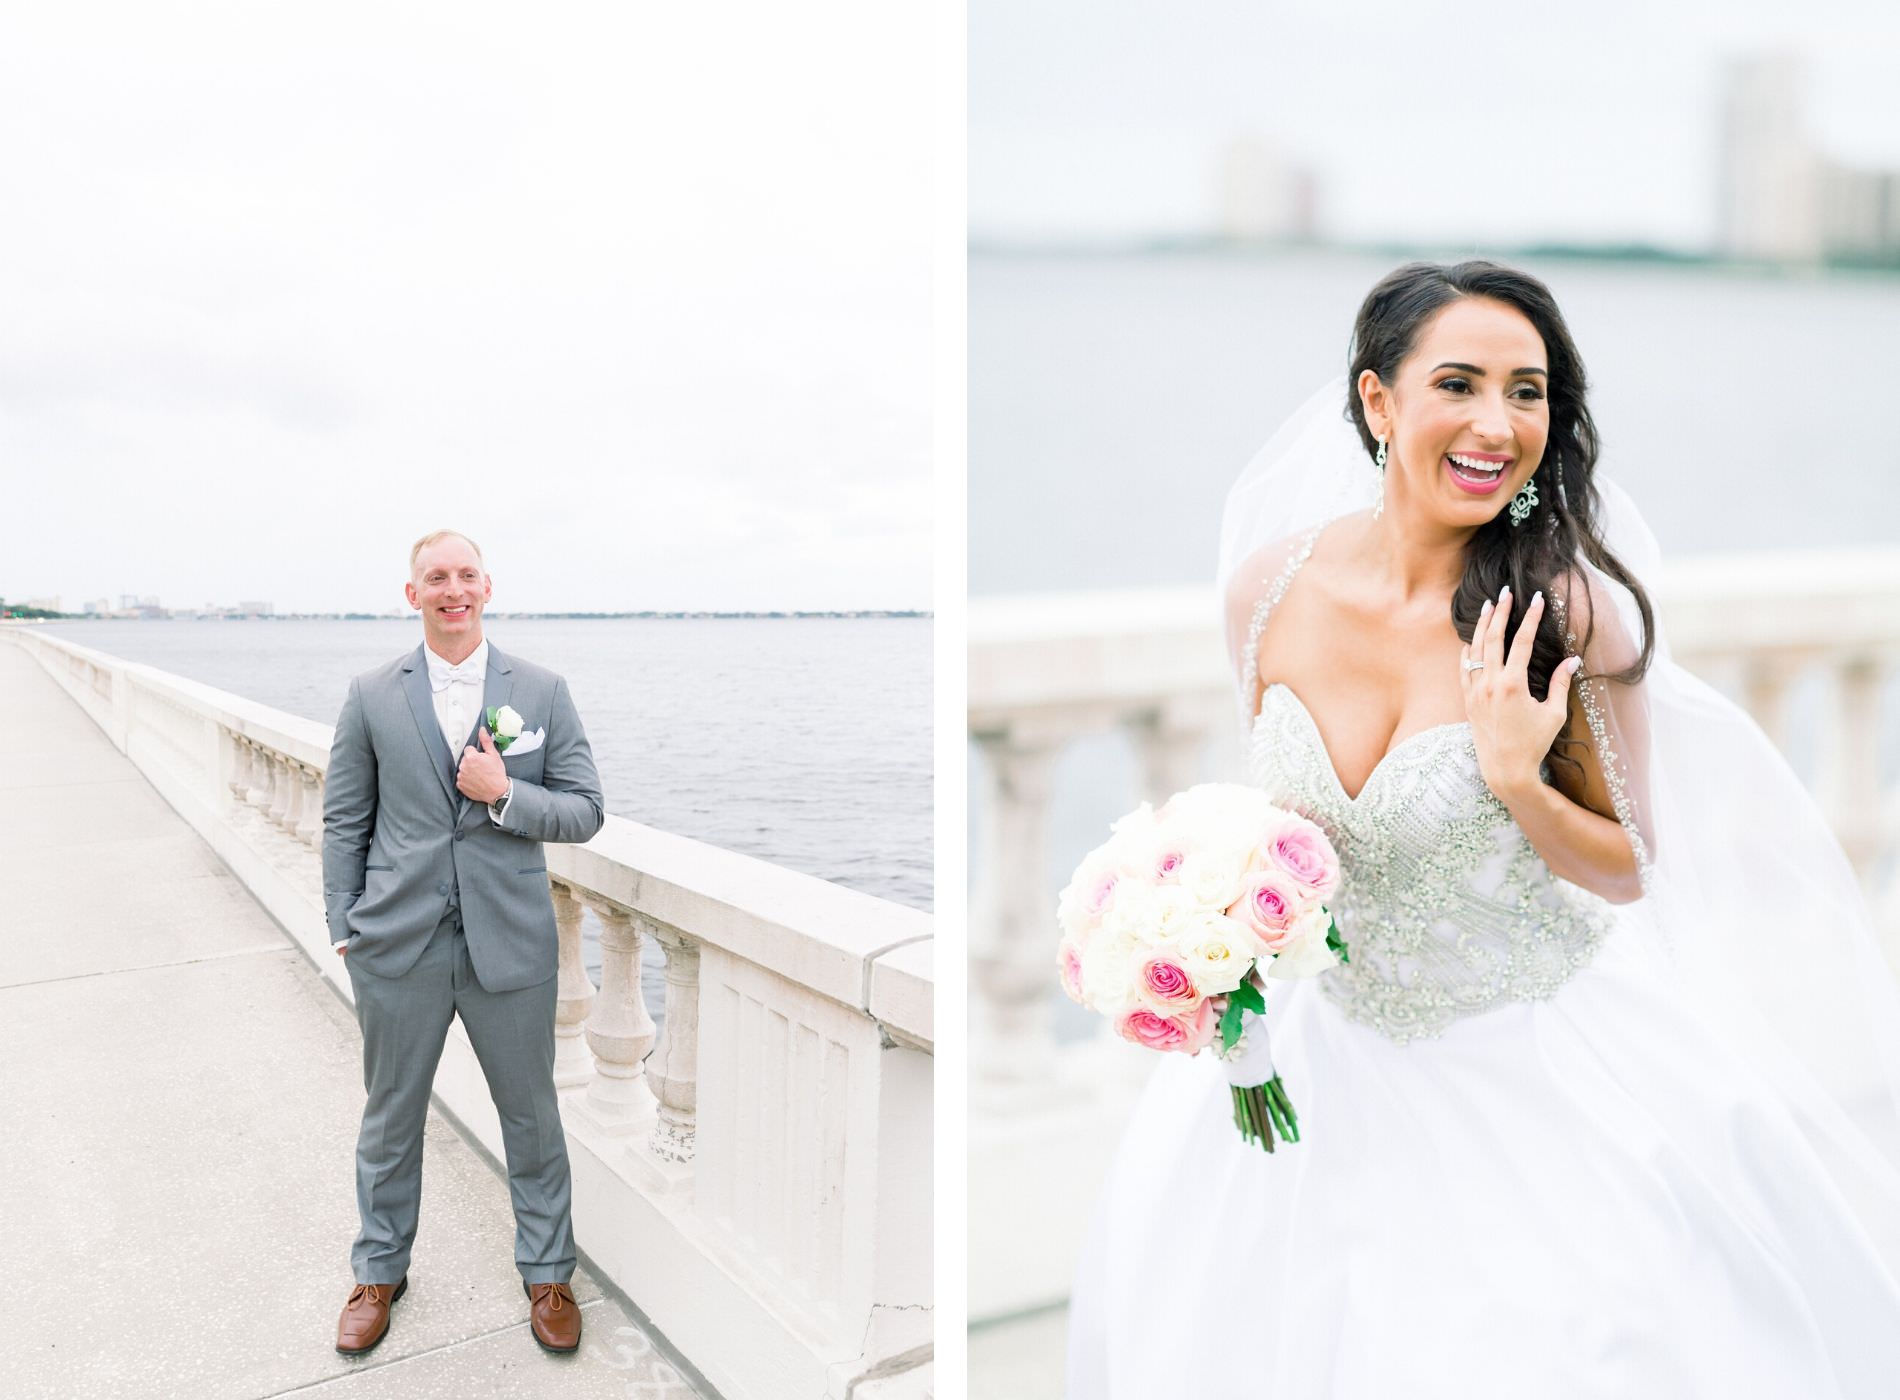 Groom in Gray Suit with White Rose Boutonniere, Bride in Sweetheart Strapless Rhinestone Bodice Ballgown Wedding Dress Holding Pink and White Roses Floral Bouquet Portrait on Bayshore Boulevard | Tampa Wedding Photographer Shauna and Jordon Photography | Wedding Dress Truly Forever Bridal